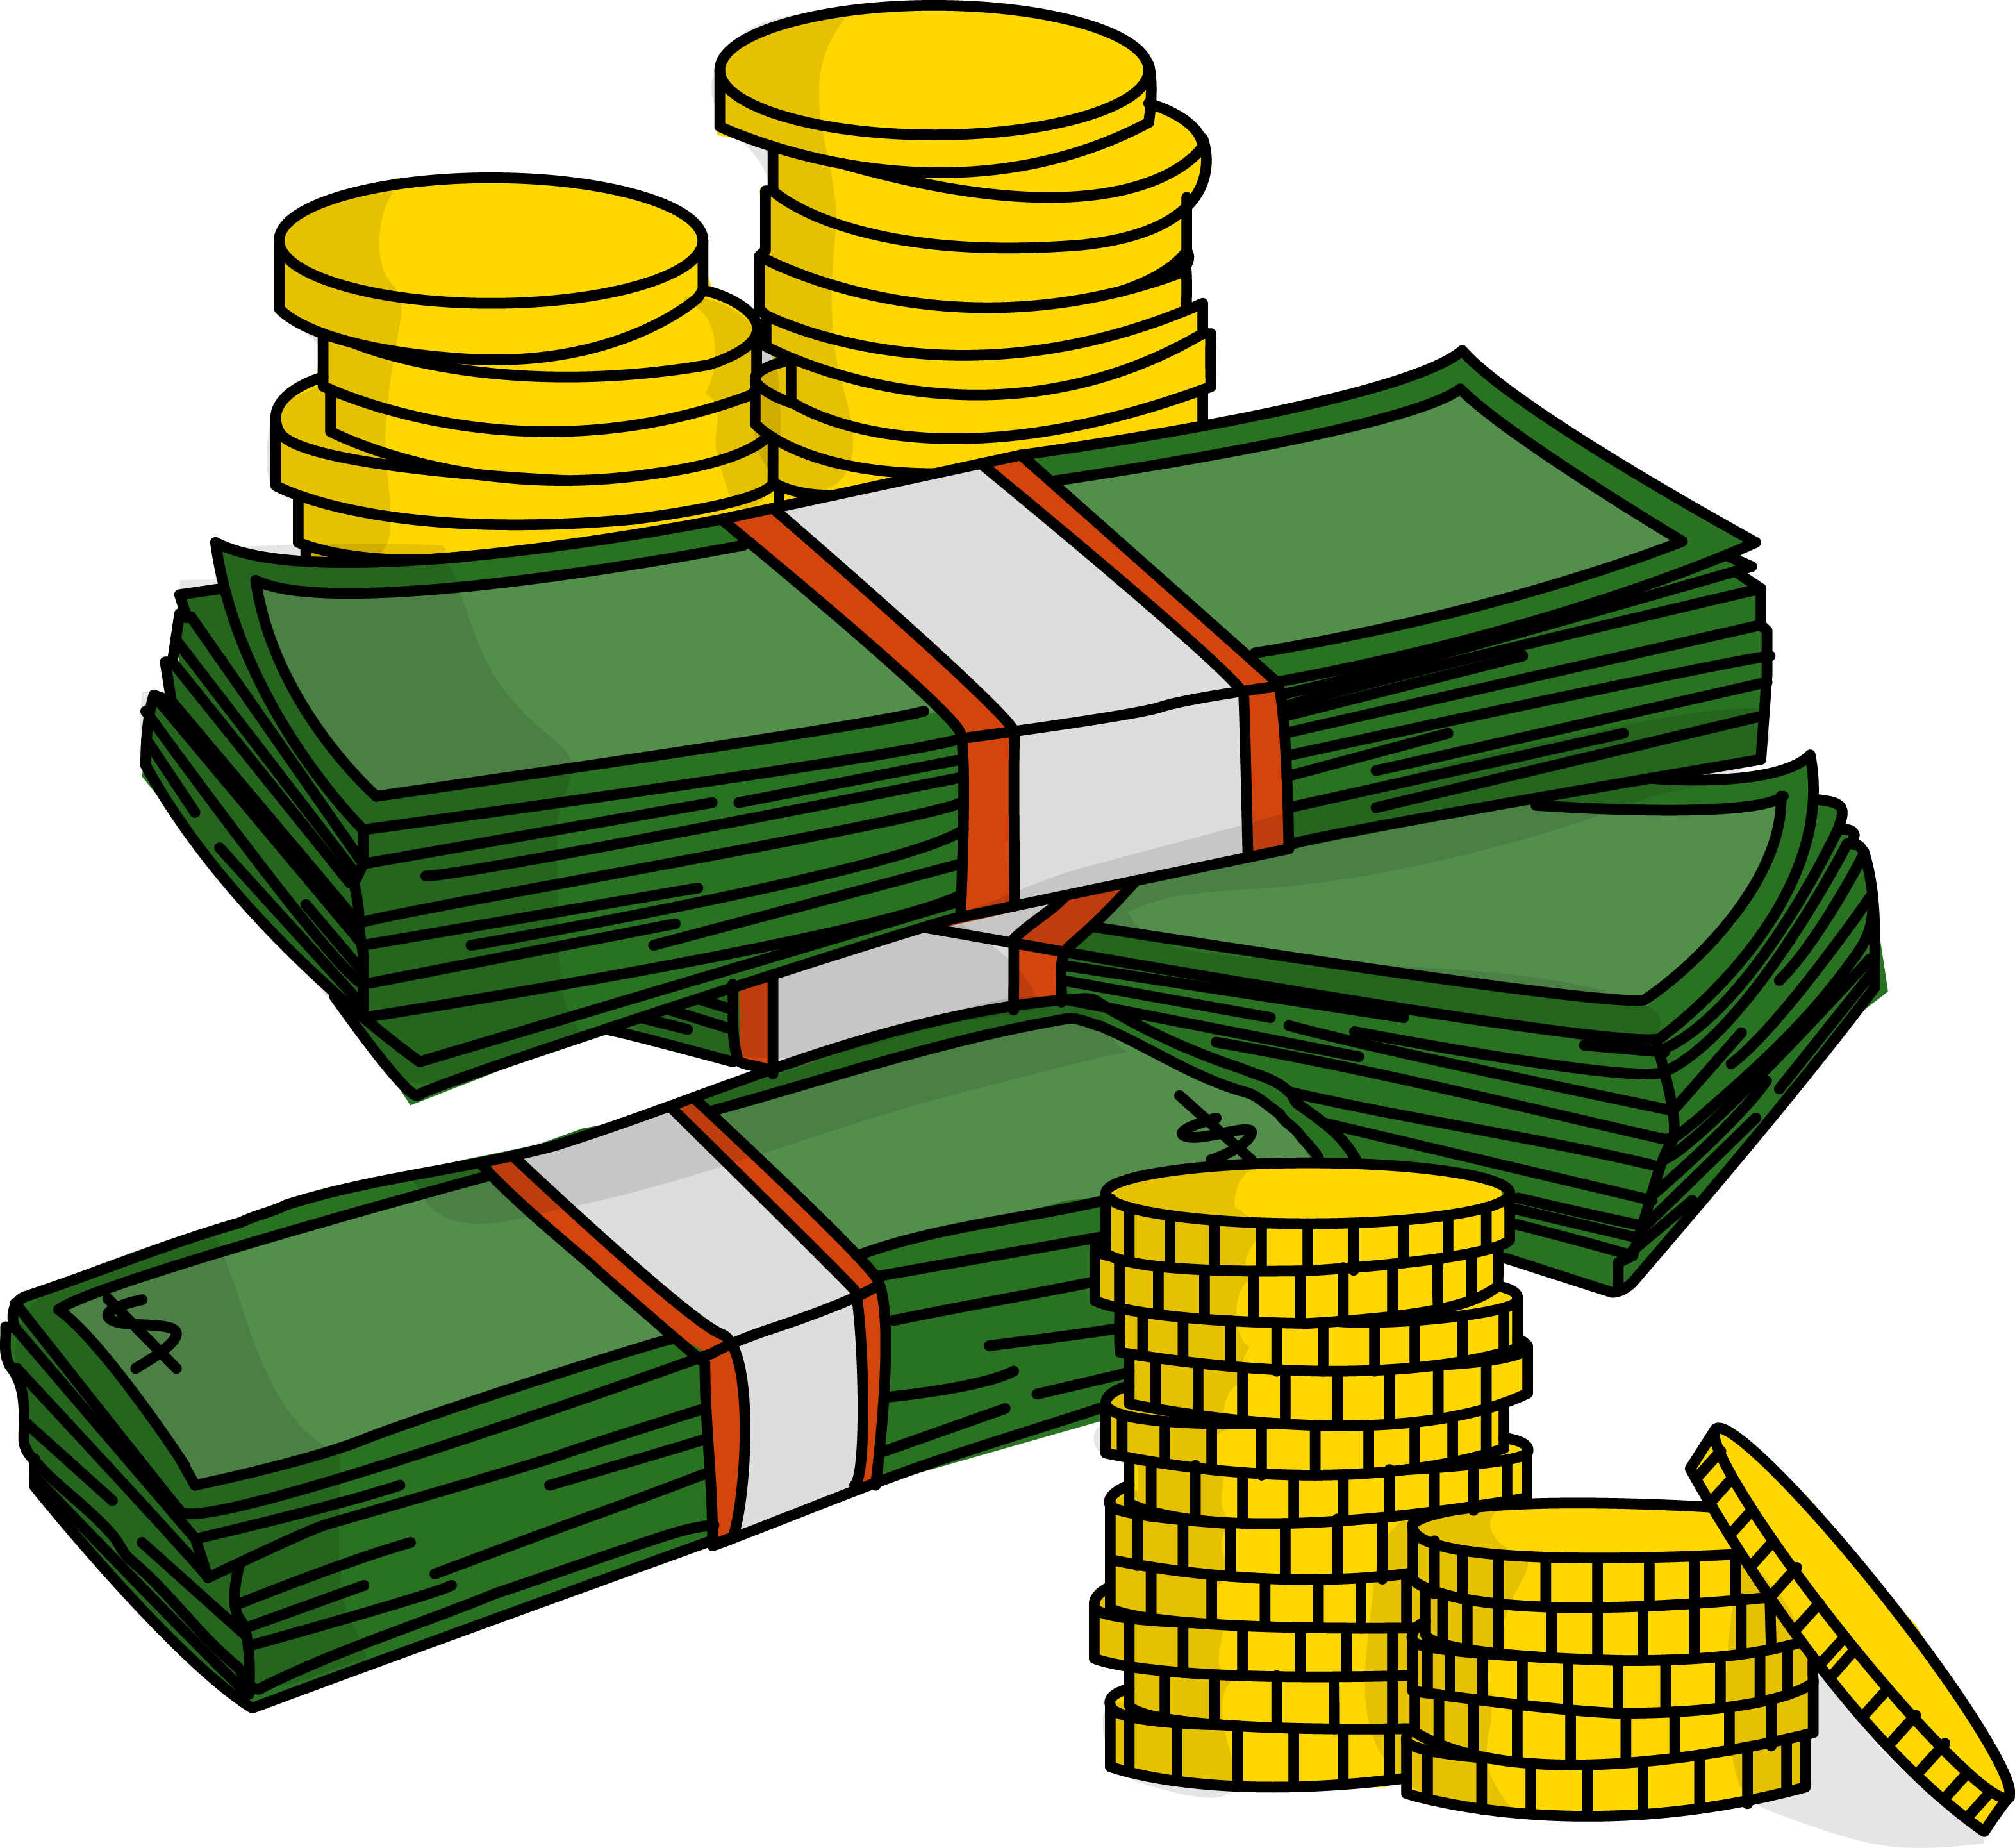 ... Free Stacks Of Money With Coins High-... Free Stacks Of Money With Coins High Resolution Clip Art | All ..-8